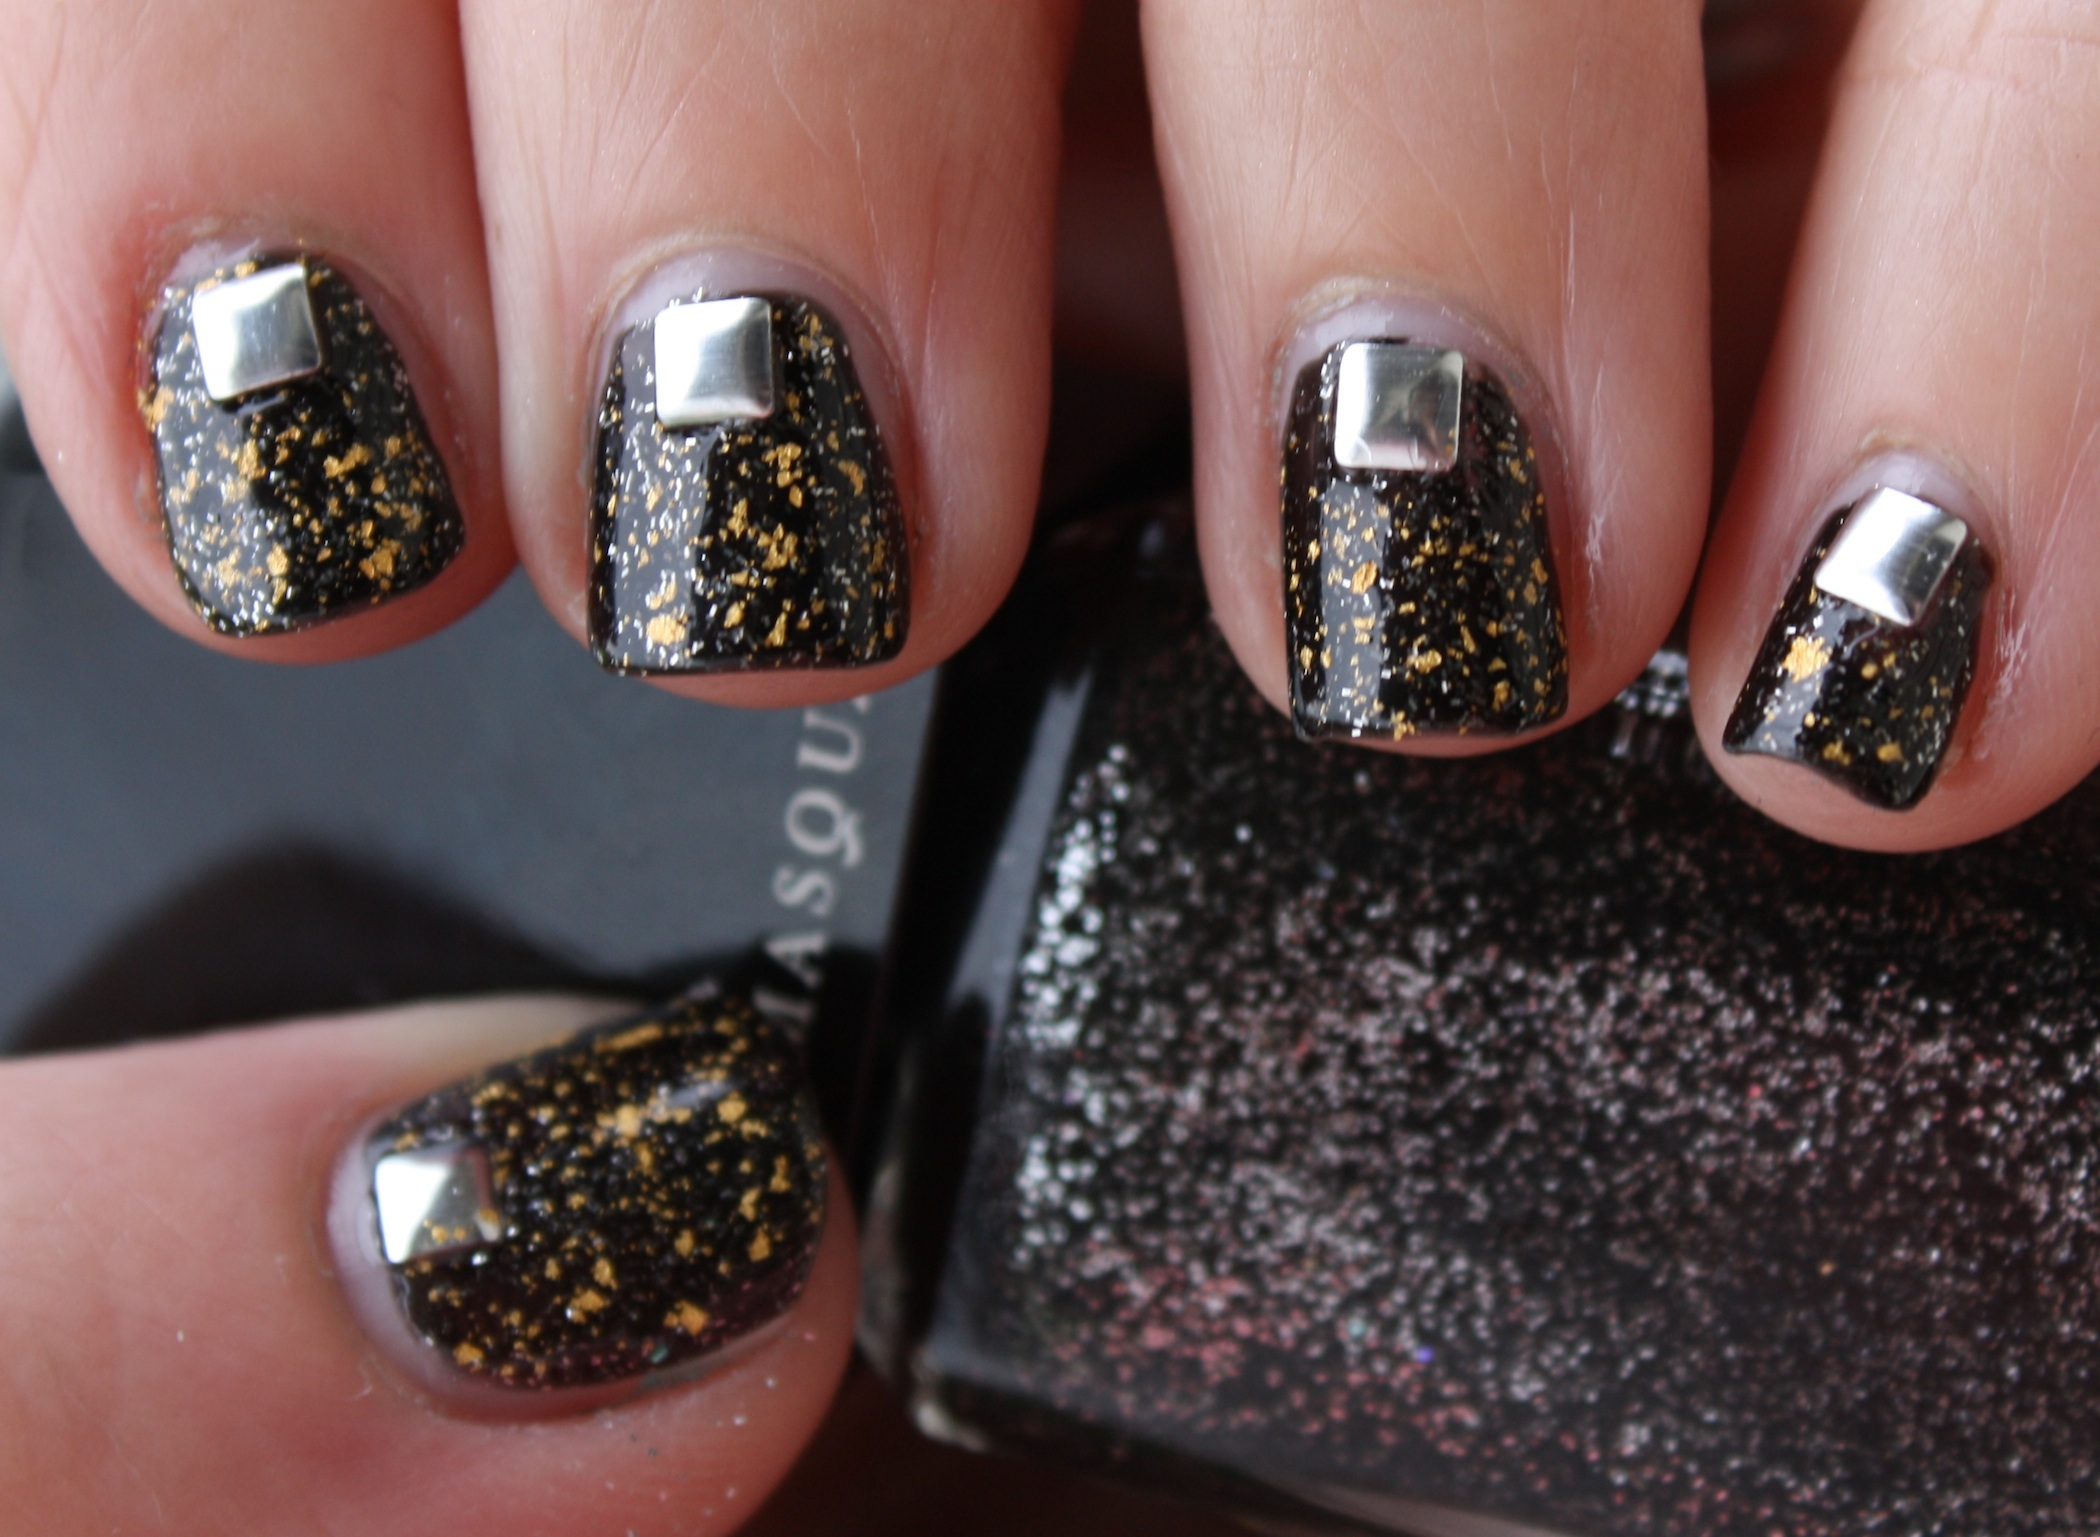 Black and Gold Manicure with Silver Studs! – horrendous color